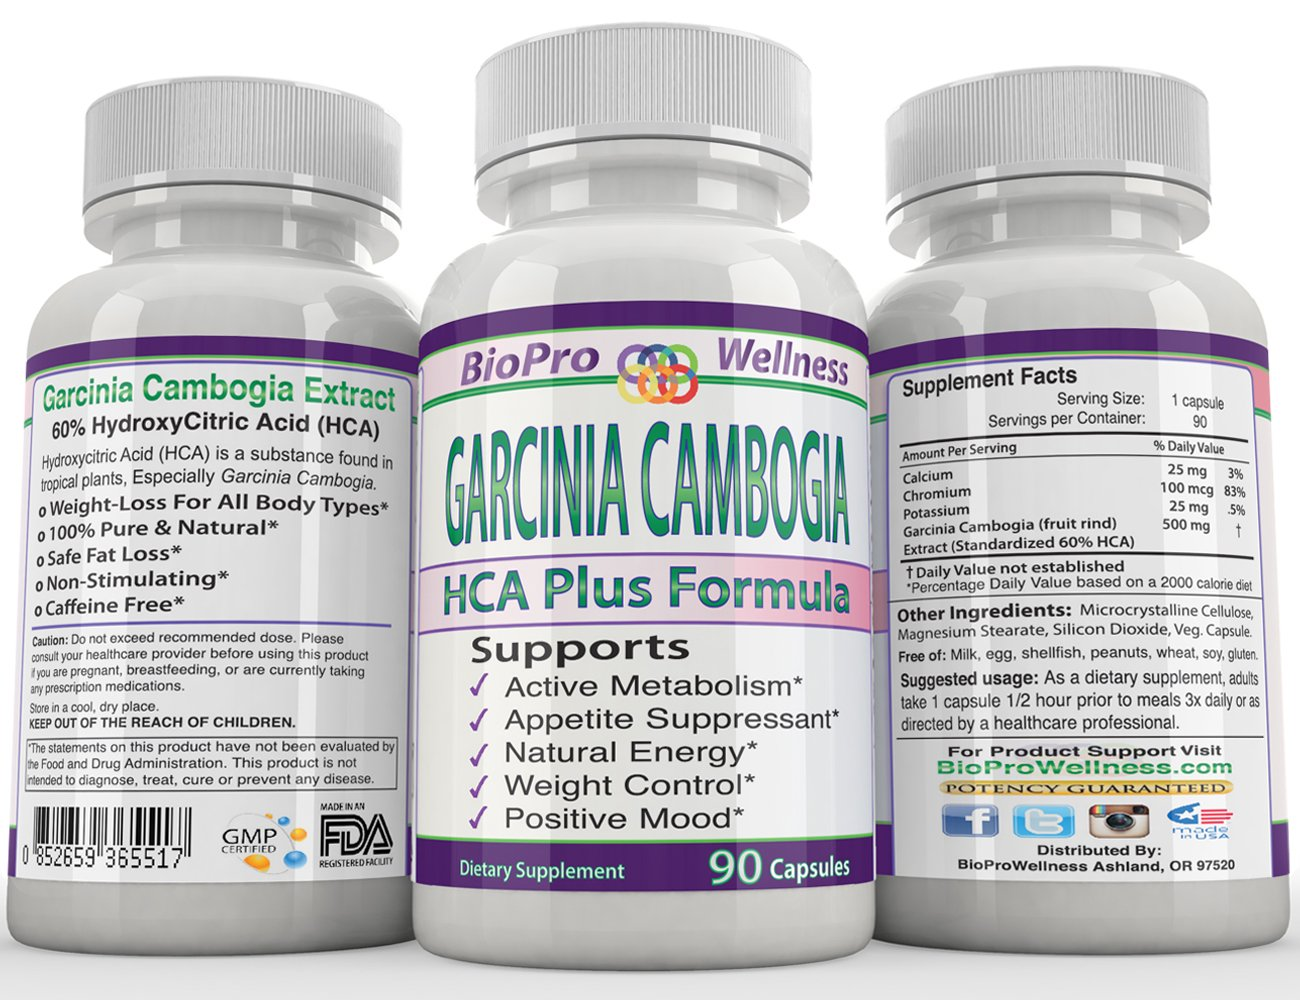 Fast Acting Fat Burner, Appetite Control, Metabolism Boost Weight Loss Management Formula, Pure Garcinia Cambogia Extract HCA 3000mg That Work for men women STRONG EXTREME Flat Belly Natural Diet Pill by BioProWellness